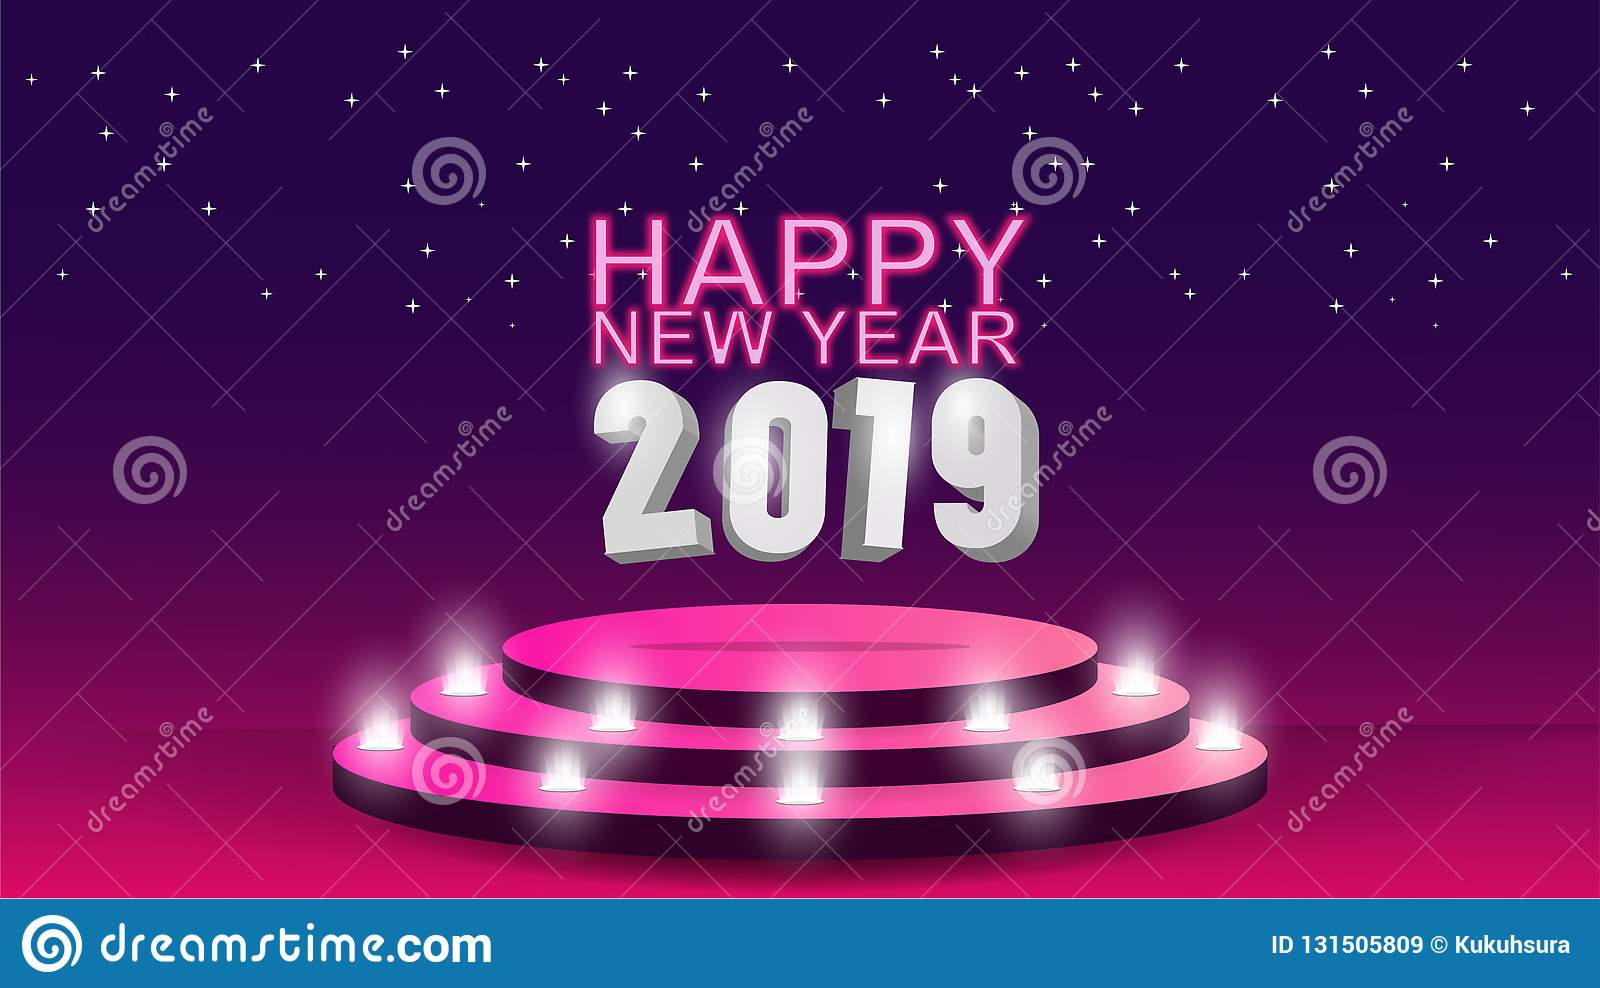 2019 happy new year template with creative background design for your greetings card invitation